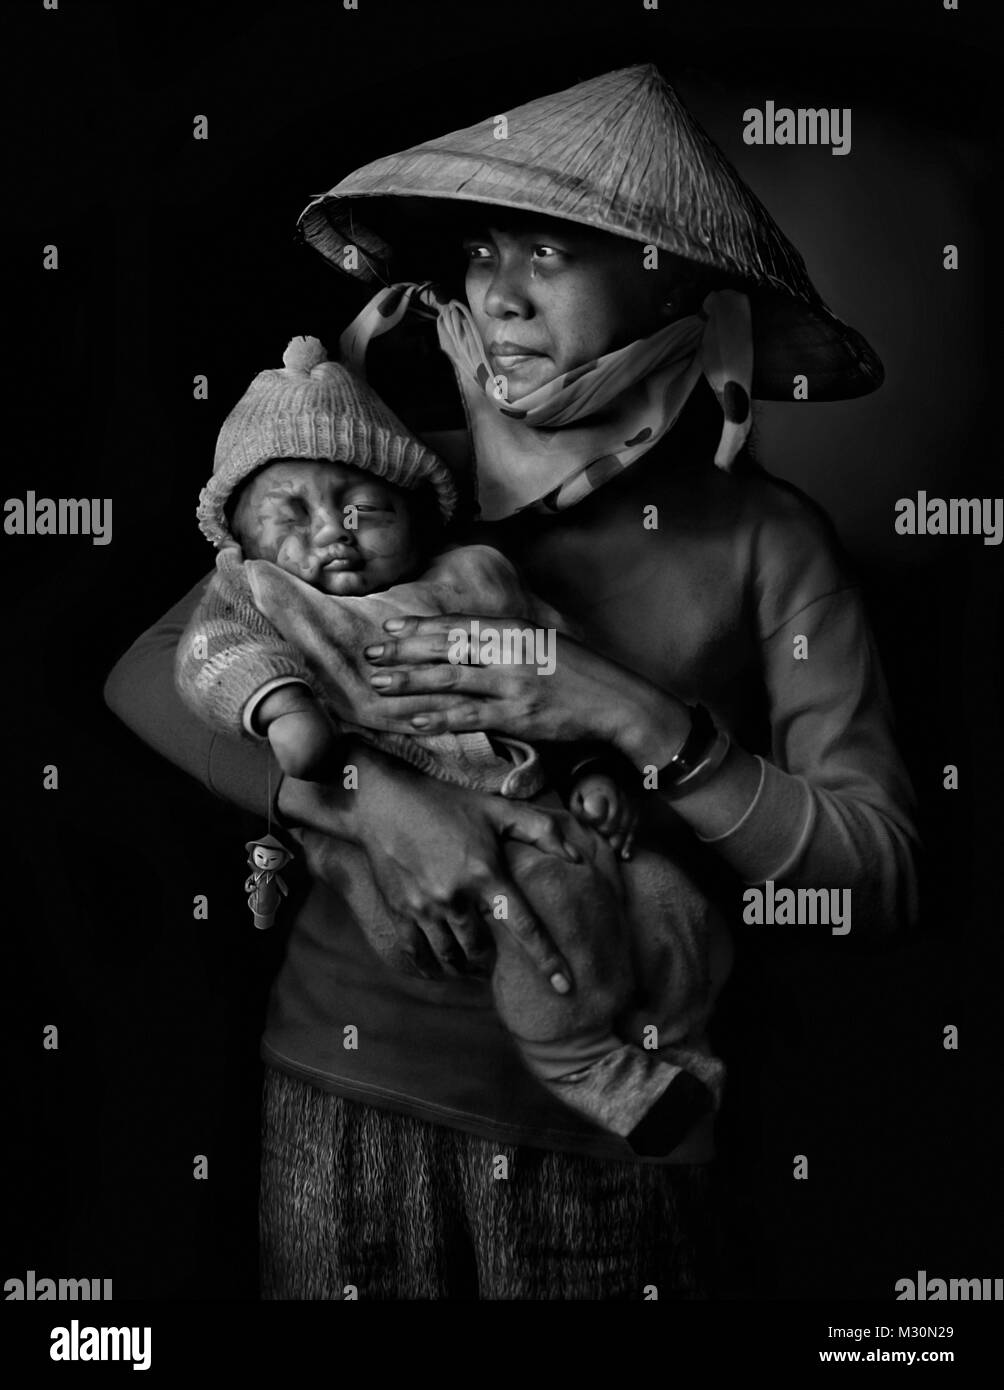 Mother with baby in Hanoi, Vietnam, Indochina, Asia - Stock Image